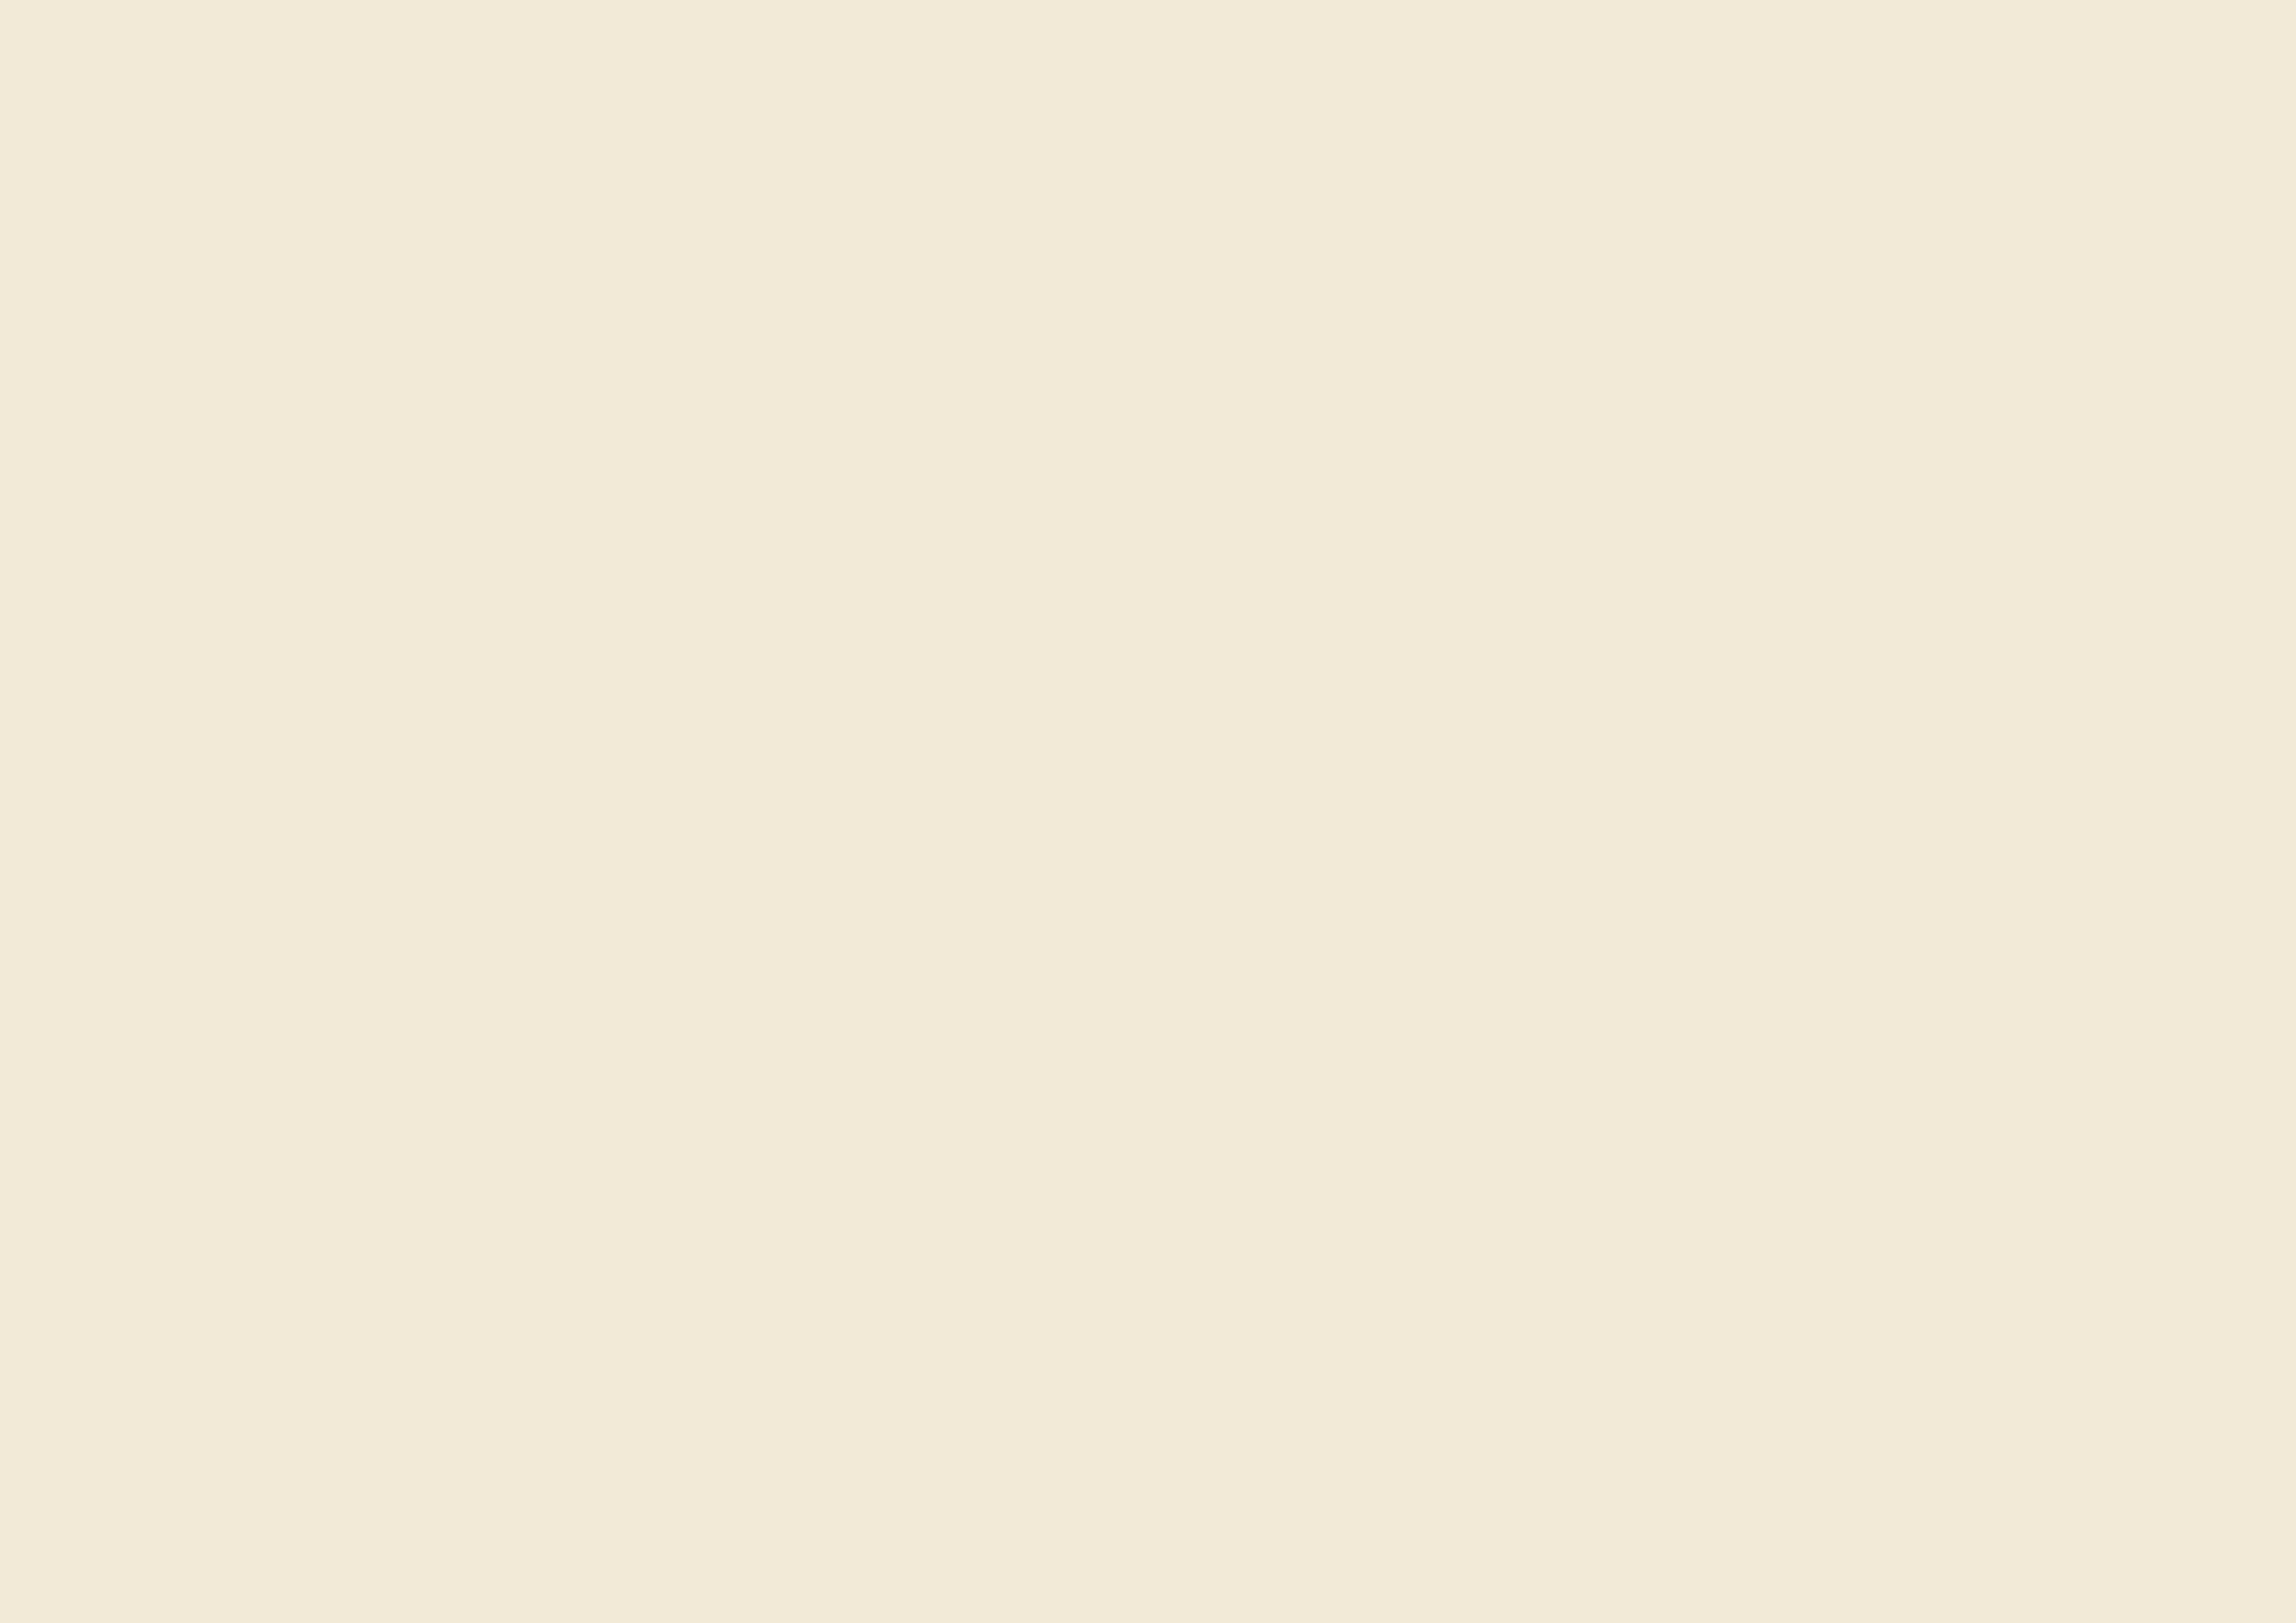 3508x2480 Eggshell Solid Color Background